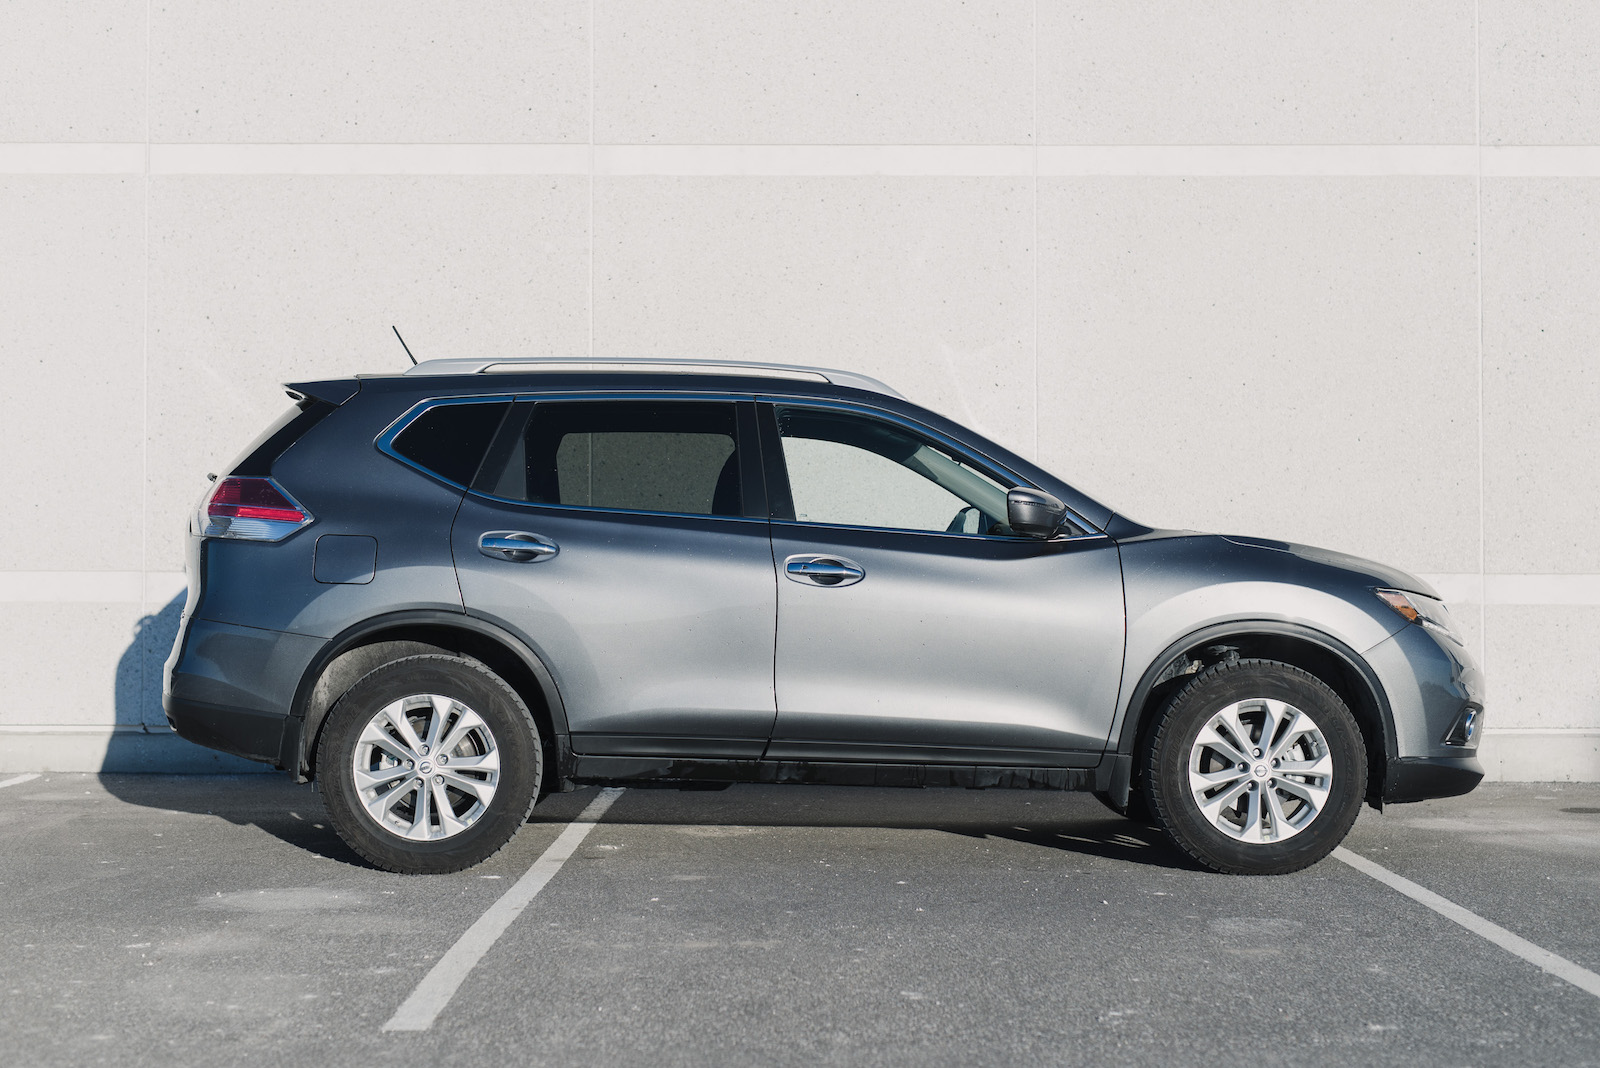 moose inventory sv in saskatchewan jaw new for sale nissan rogue